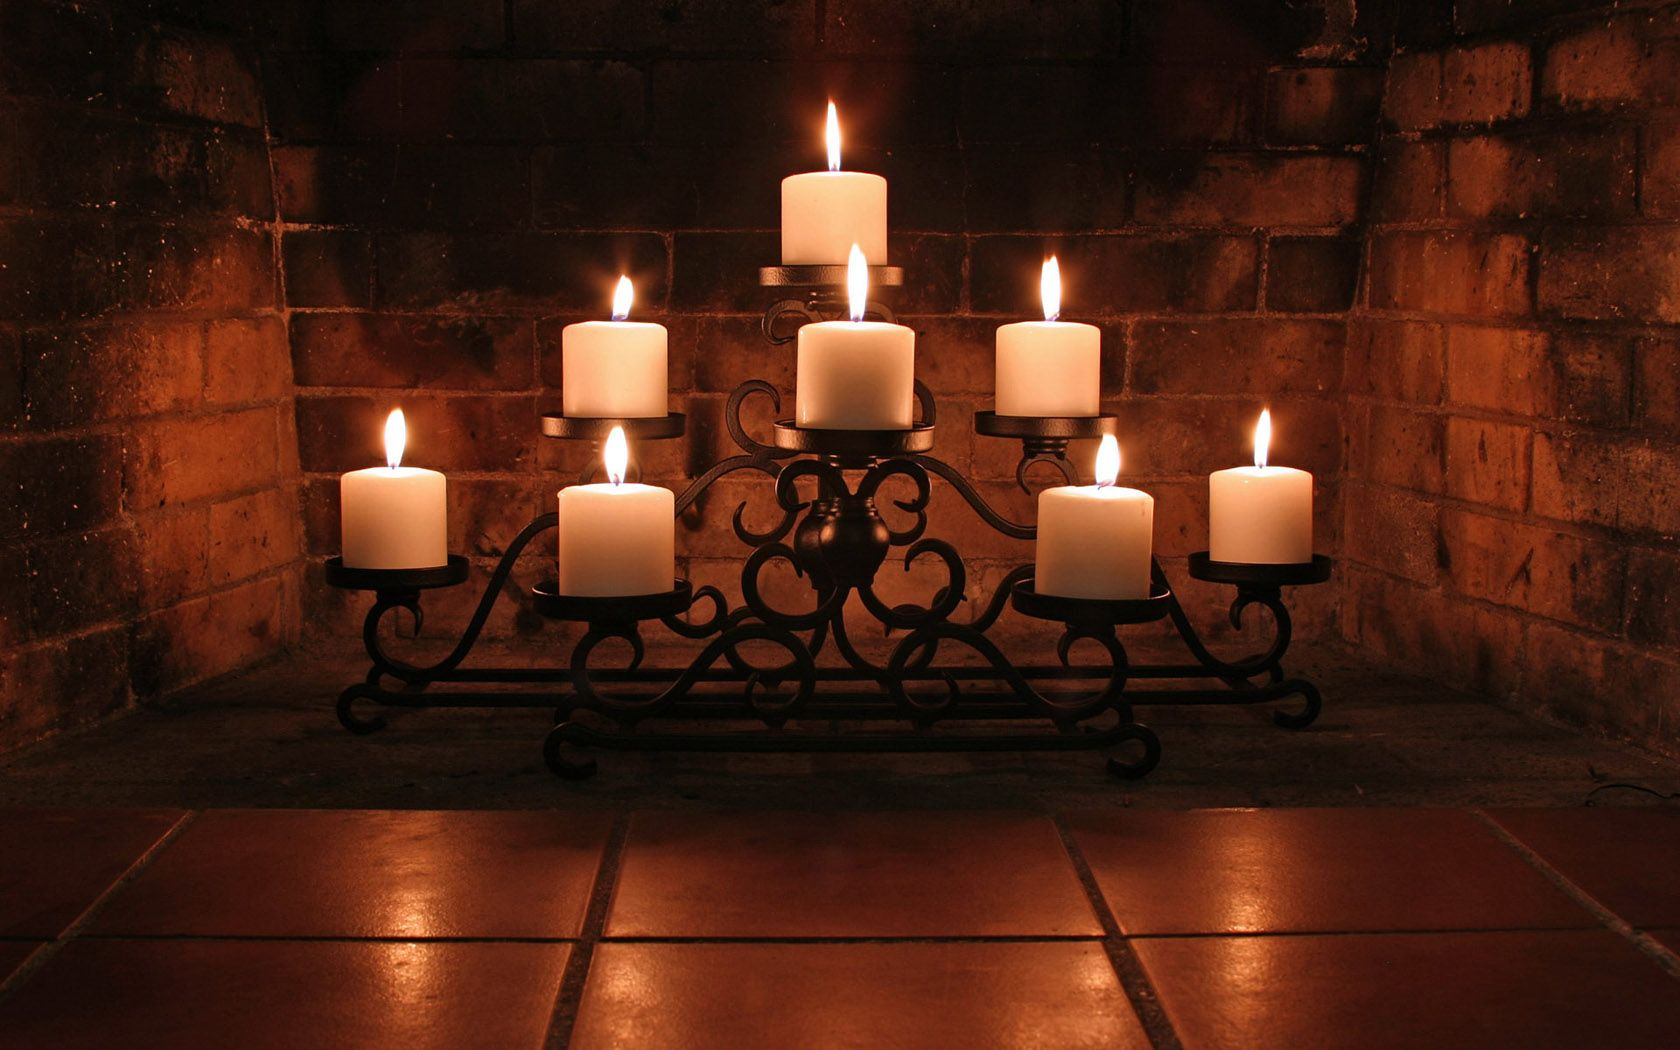 Candles For Fireplace Insert Dark Romantic Candlelight Fireplace Home Décor Fireplace